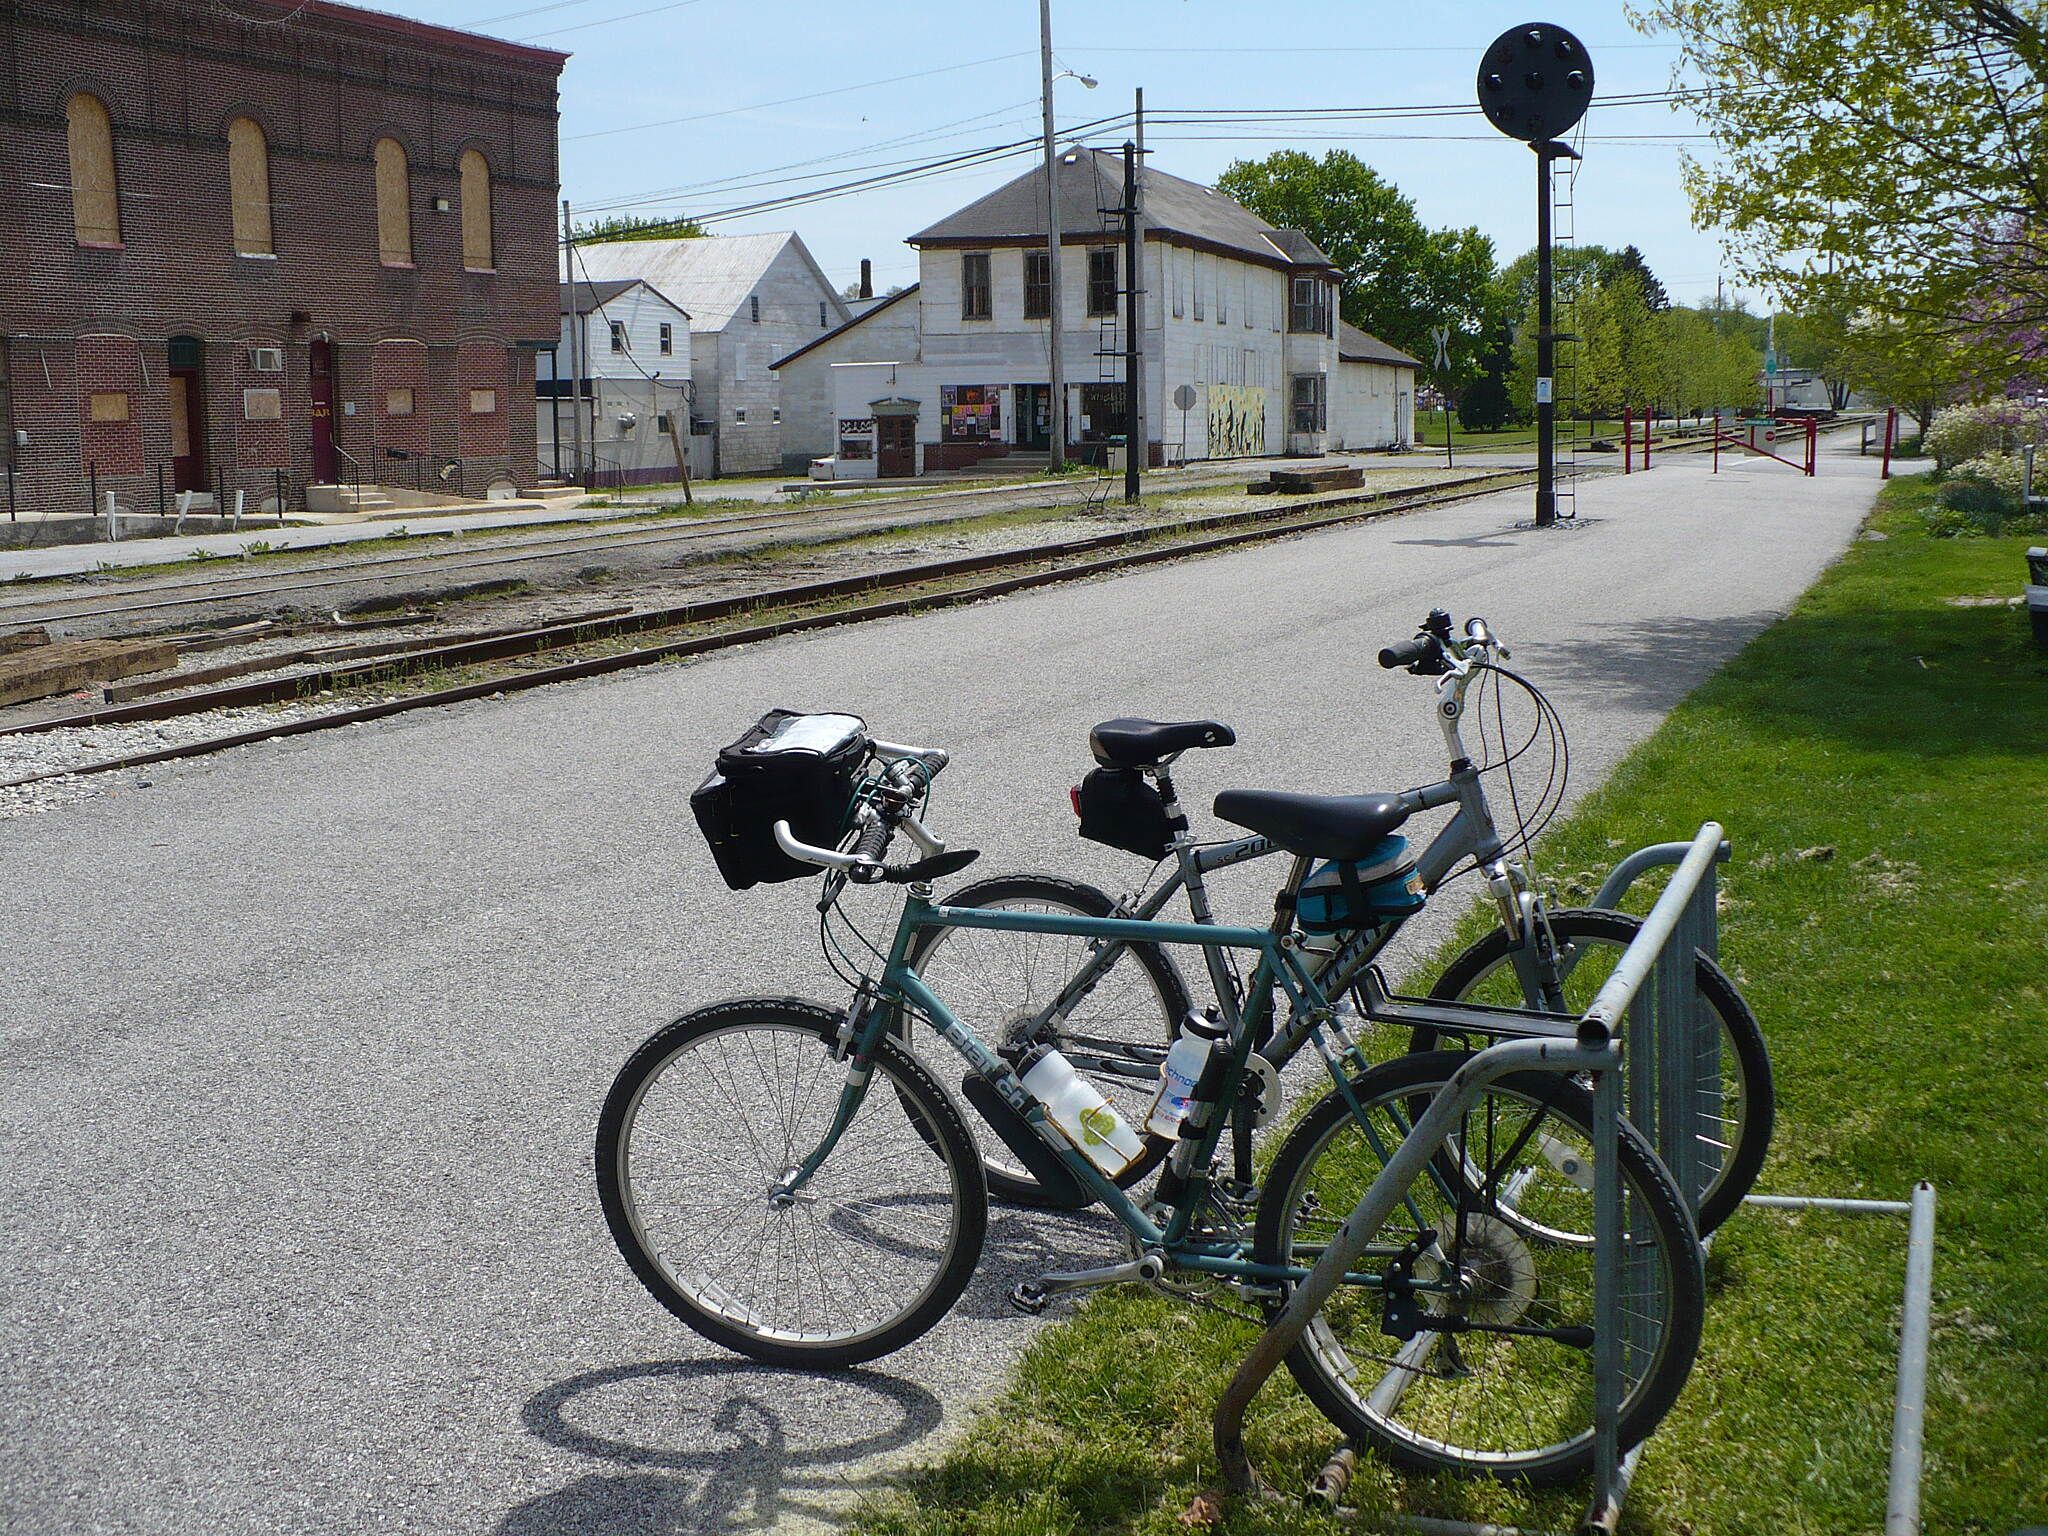 Heritage Rail Trail County Park lunch break harold and dave enjoyed the trail, lunch and the whistle stop bike shop